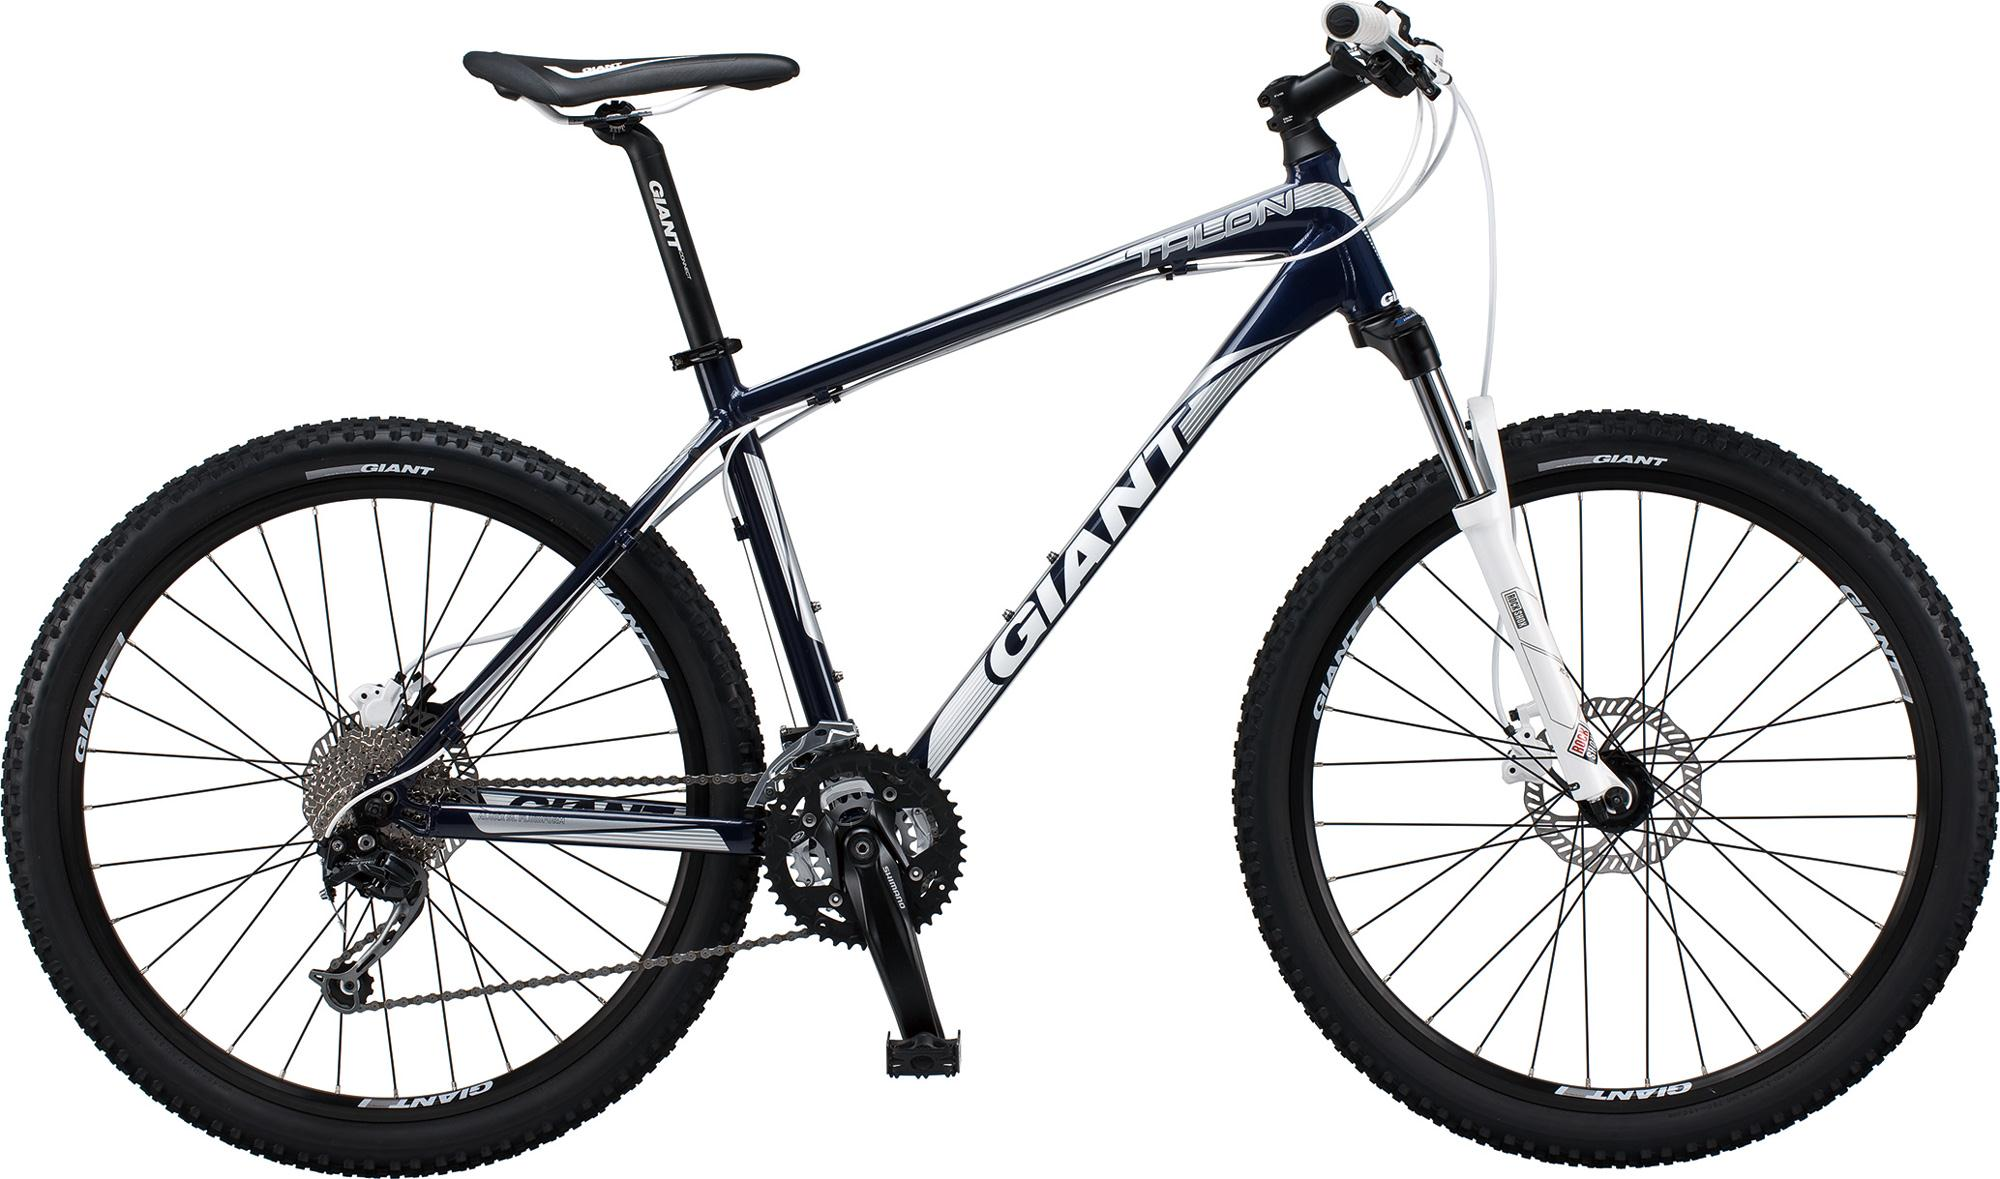 http://www.giant-bicycles.com/_generated/_generated_ru/bikes/models/images/2000/2012/Talon-2-NavyBlue.jpg